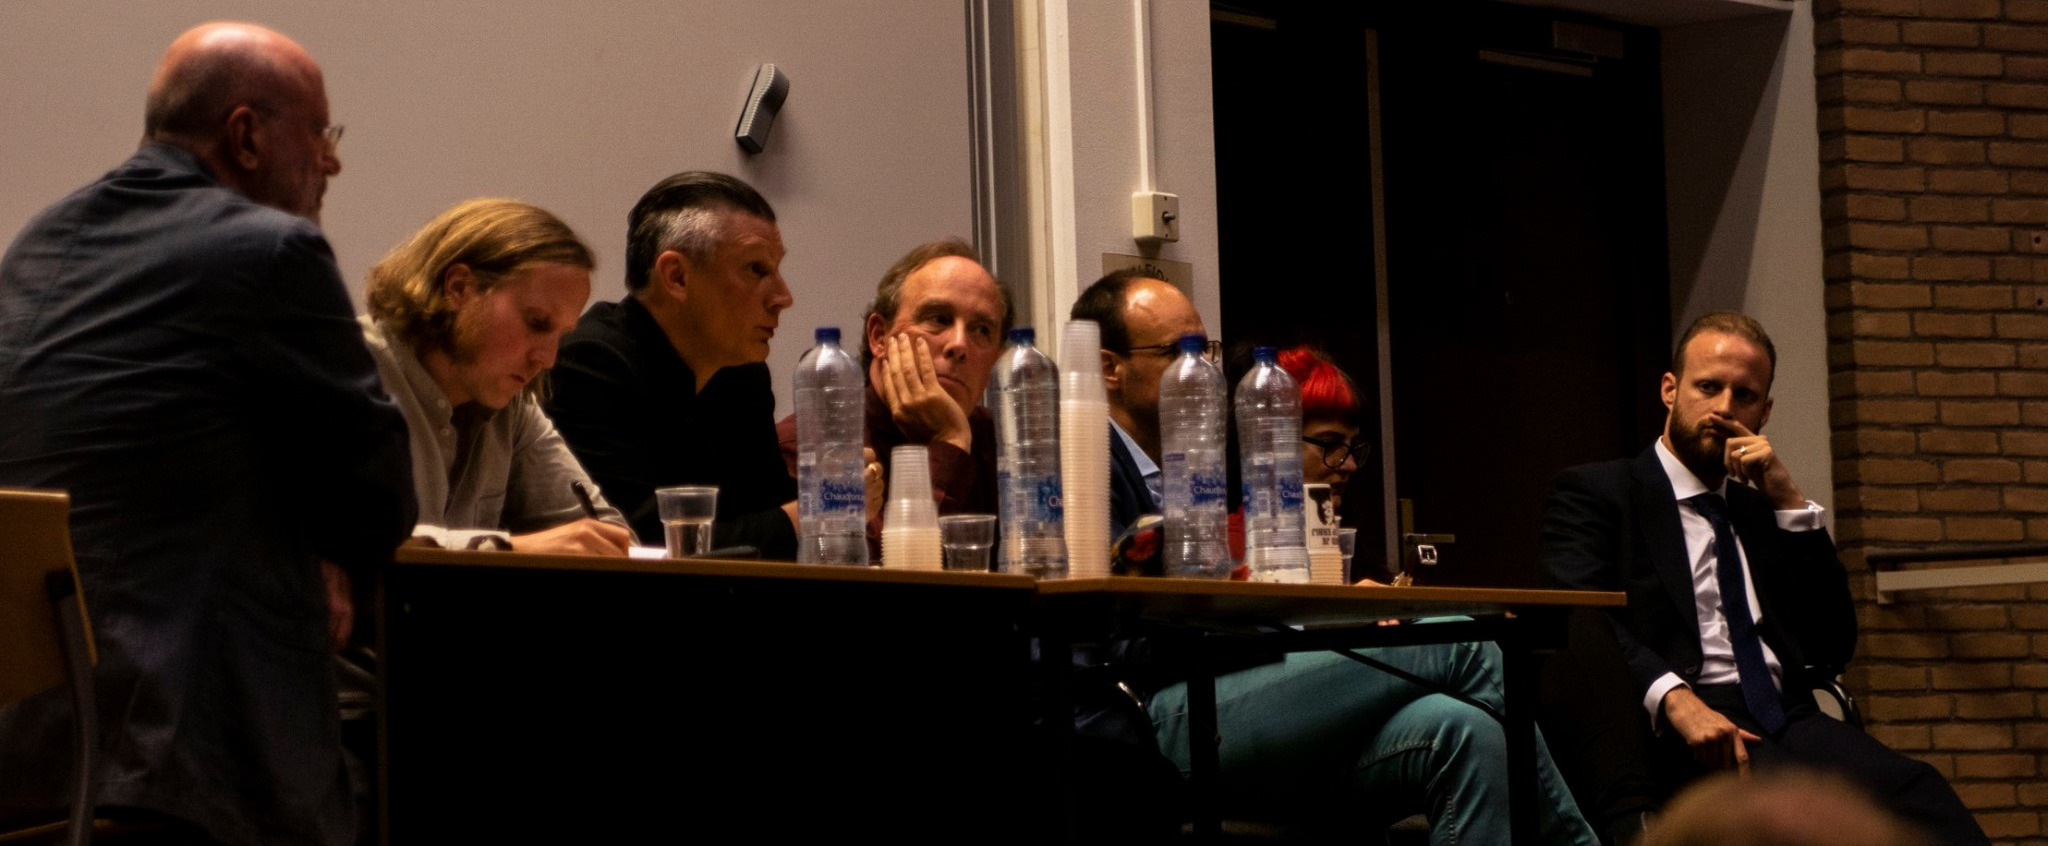 The panel in question (thanks to Sander Kalverda for the photo)